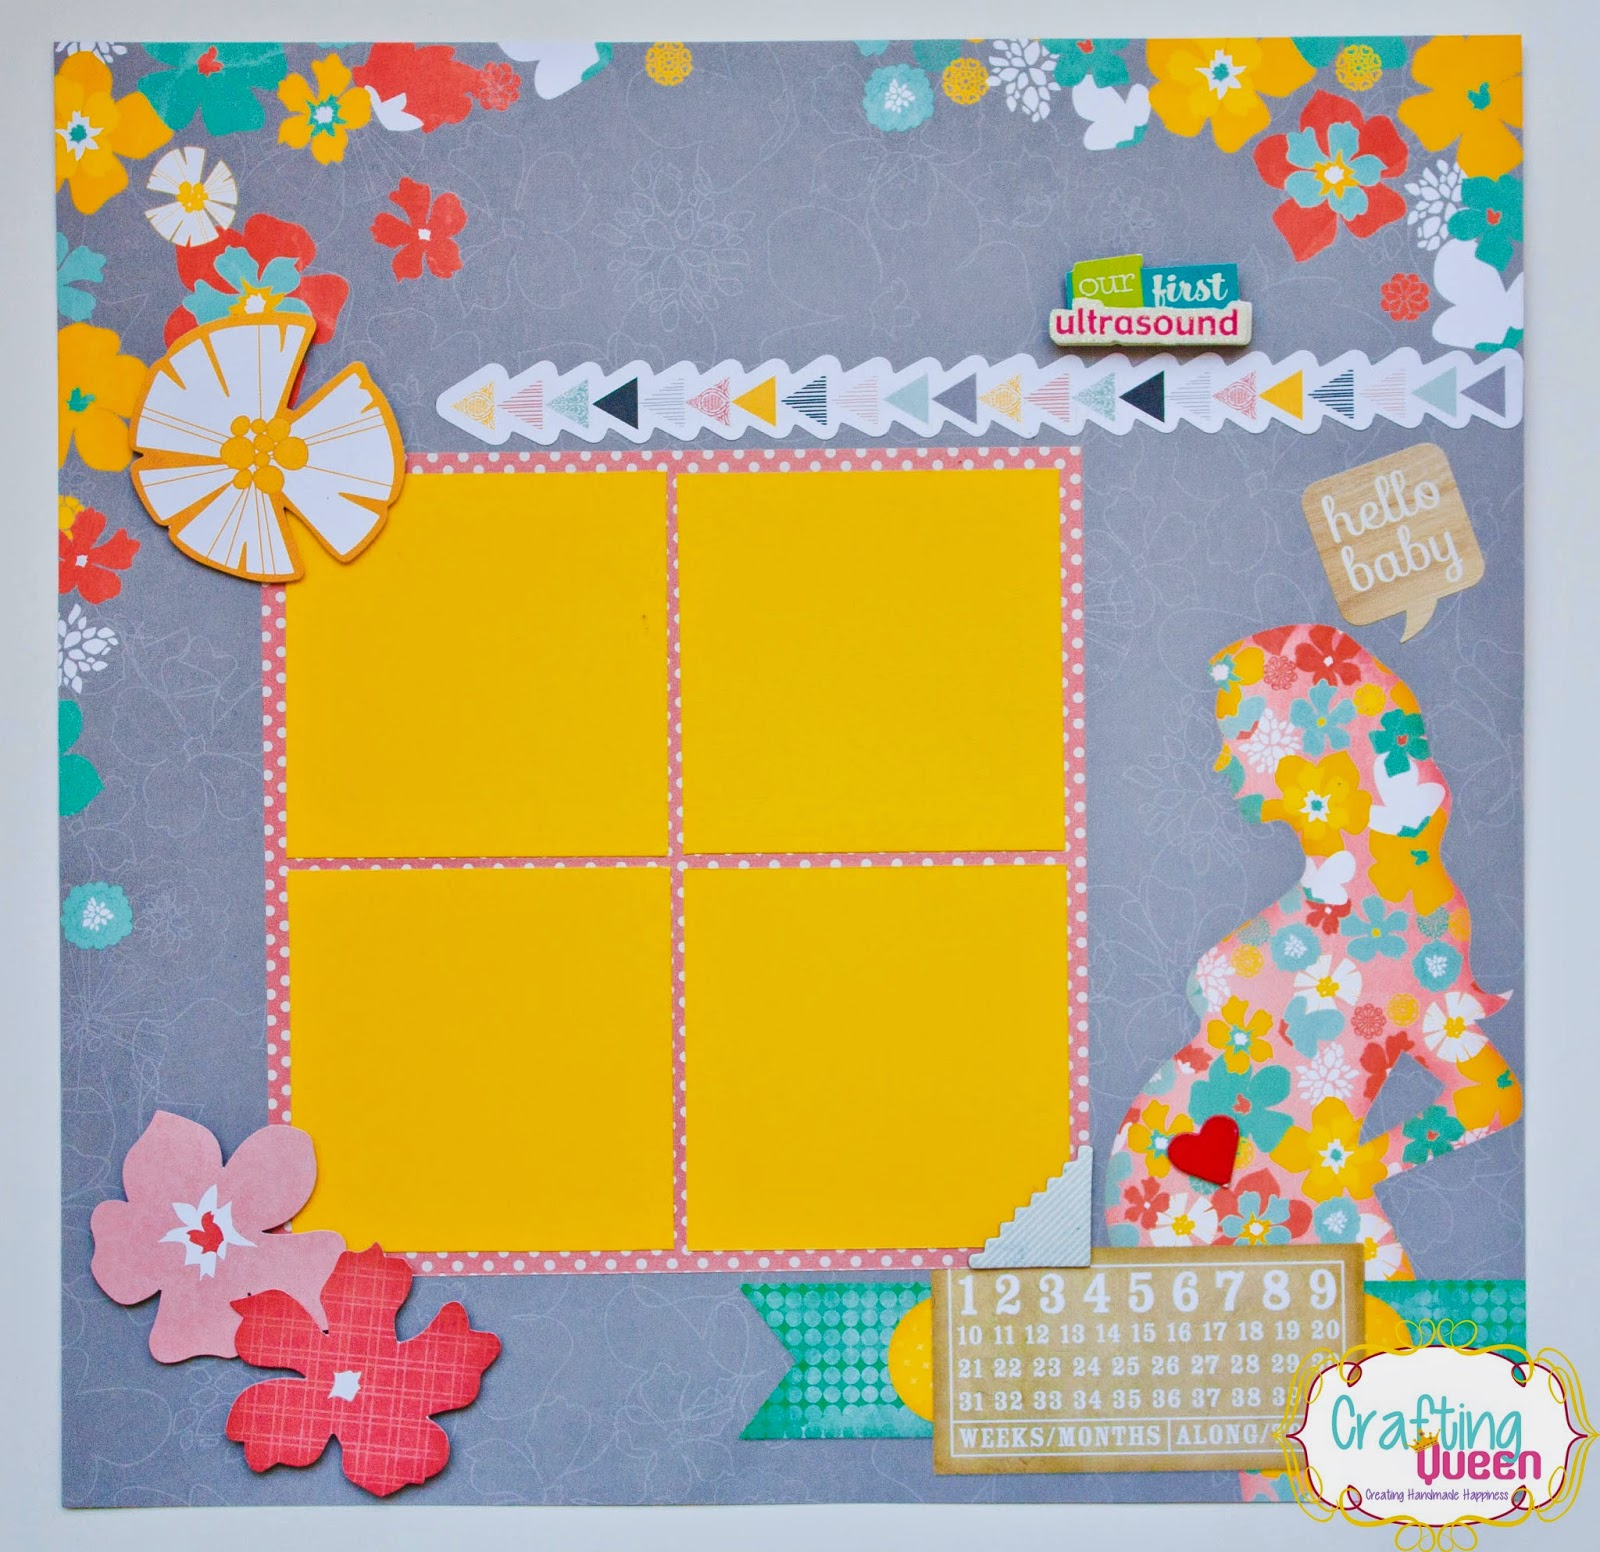 Baby journal scrapbook ideas -  14 Page Scrapbook And I Also Have A Video At The End Of This Post For You To See All The Interactive Elements So Here Are The Pics In The Page Order